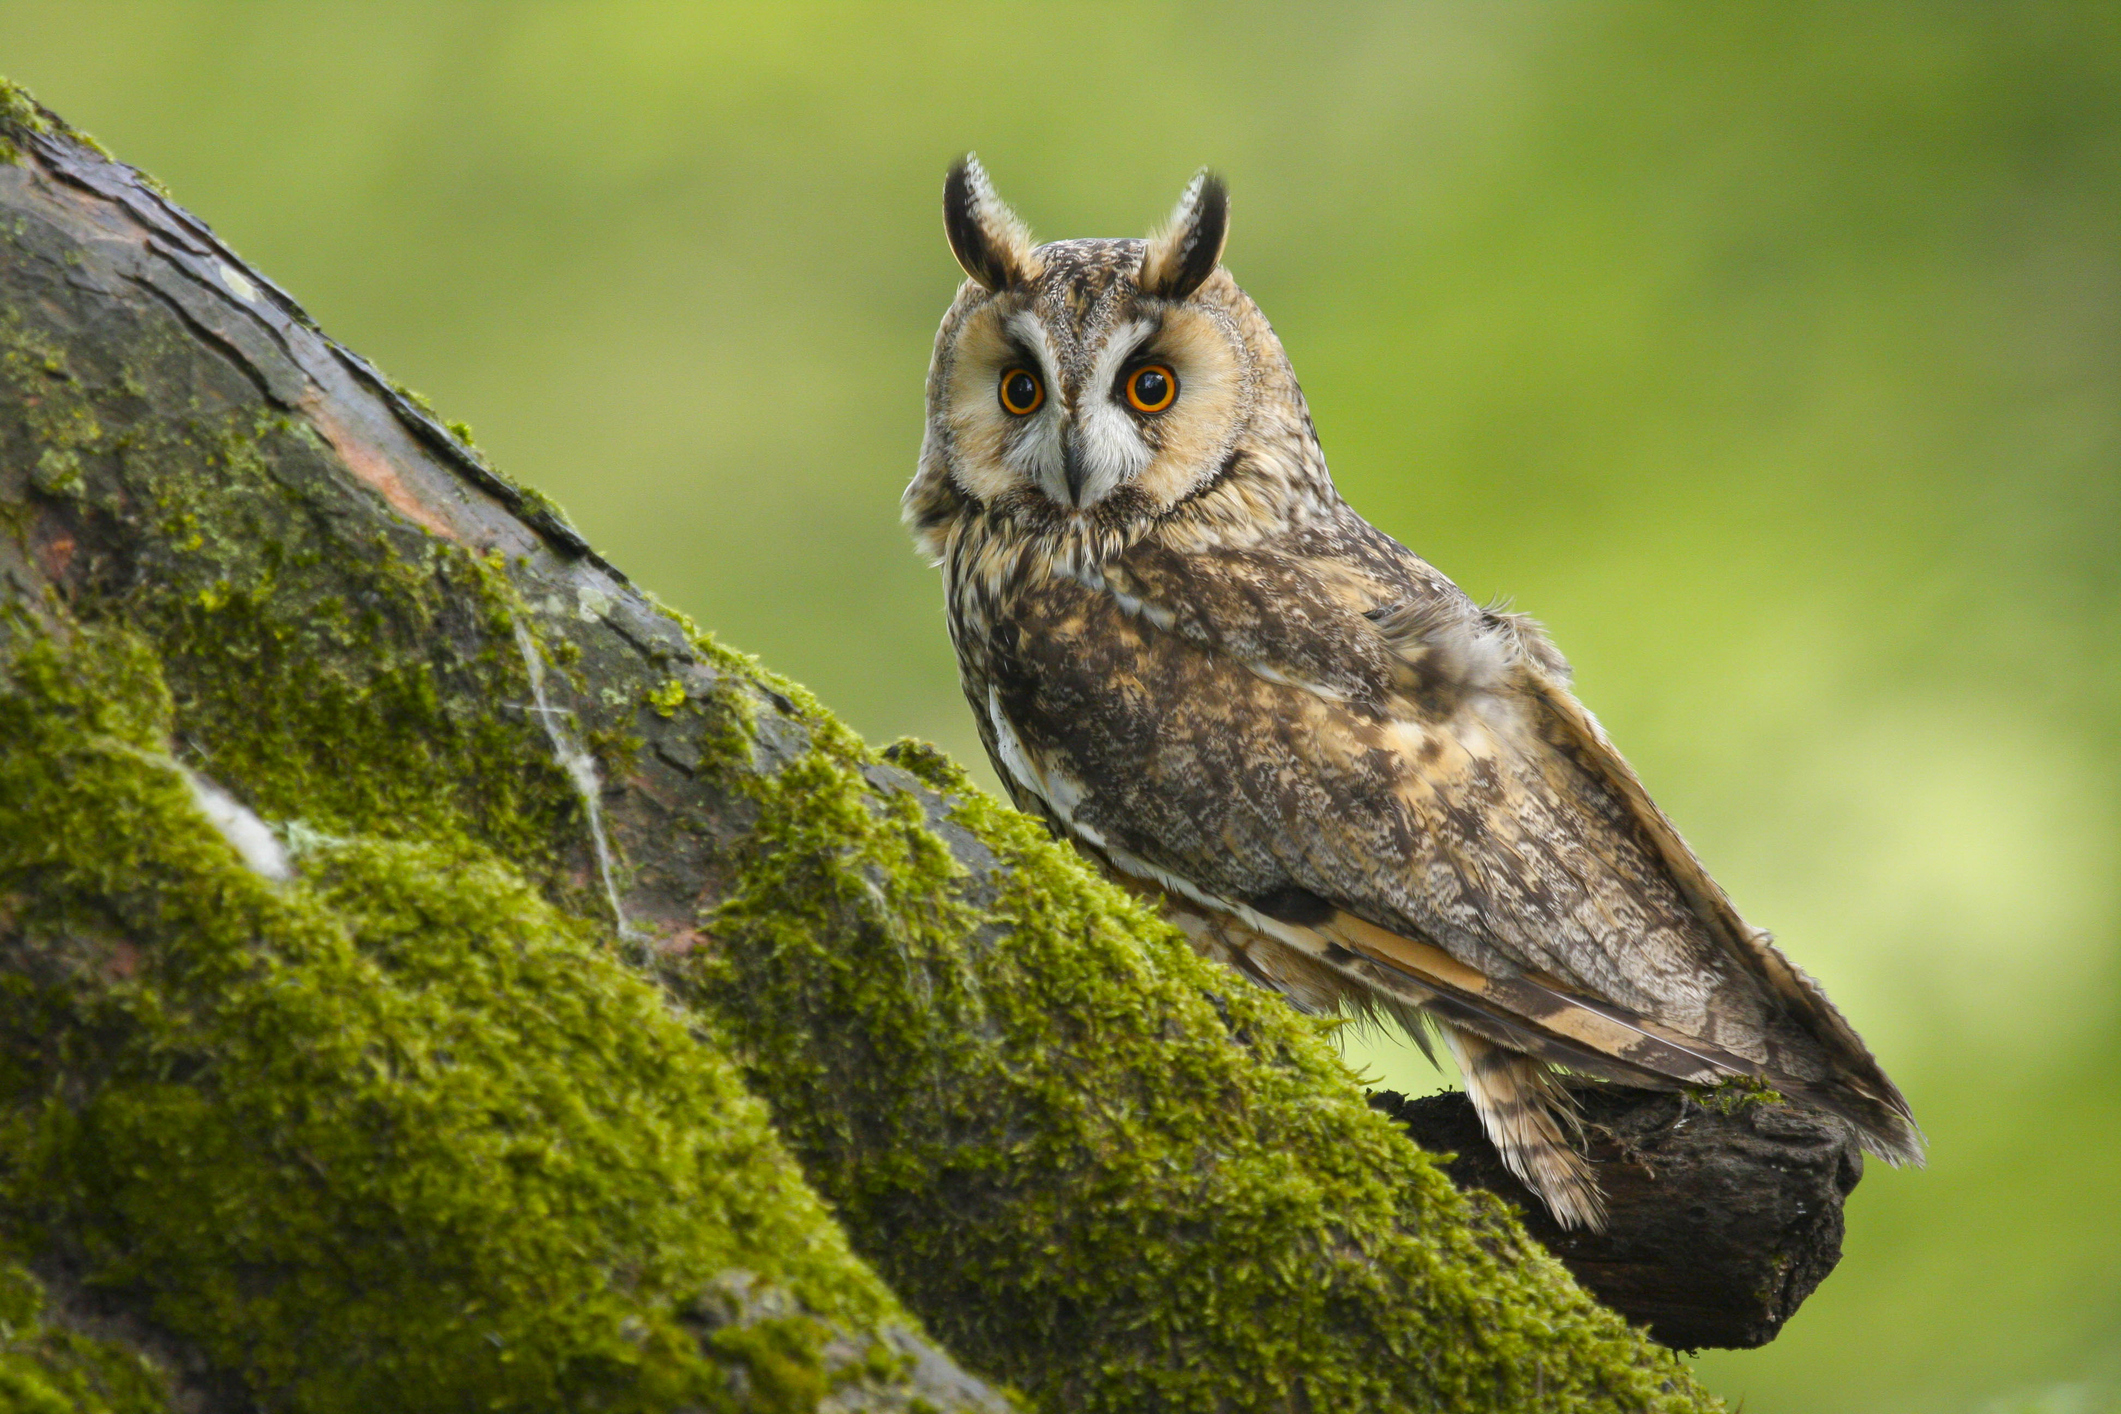 A close up portrait of a Long Eared Owl (asio otus) taken in Wales UK